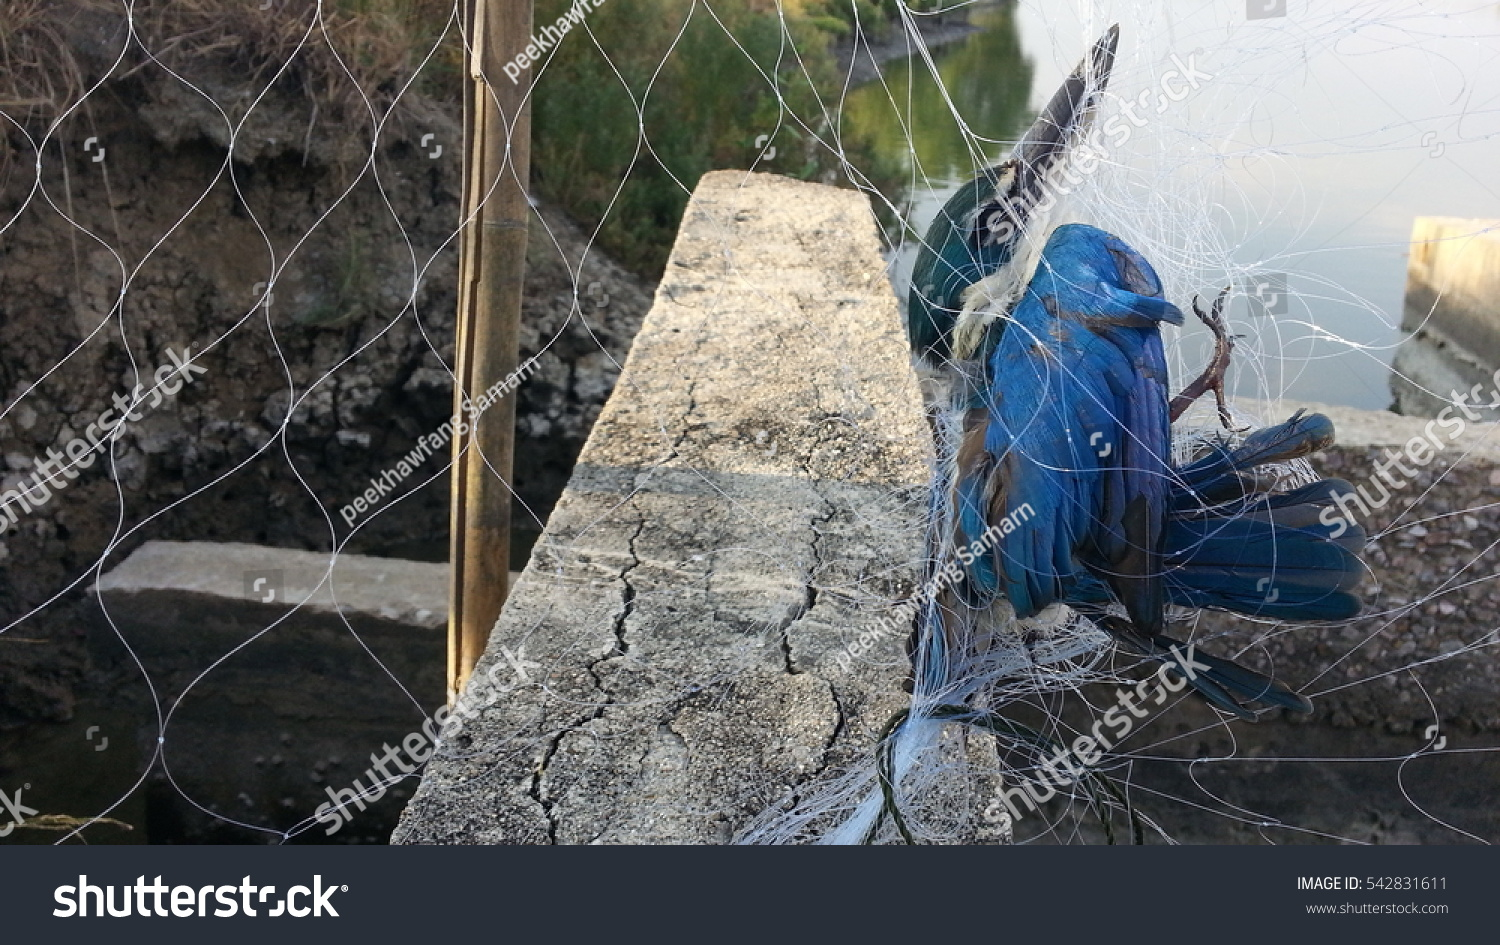 Bird Dead Strangled By Trap Stock Photo (Download Now) 542831611 ...